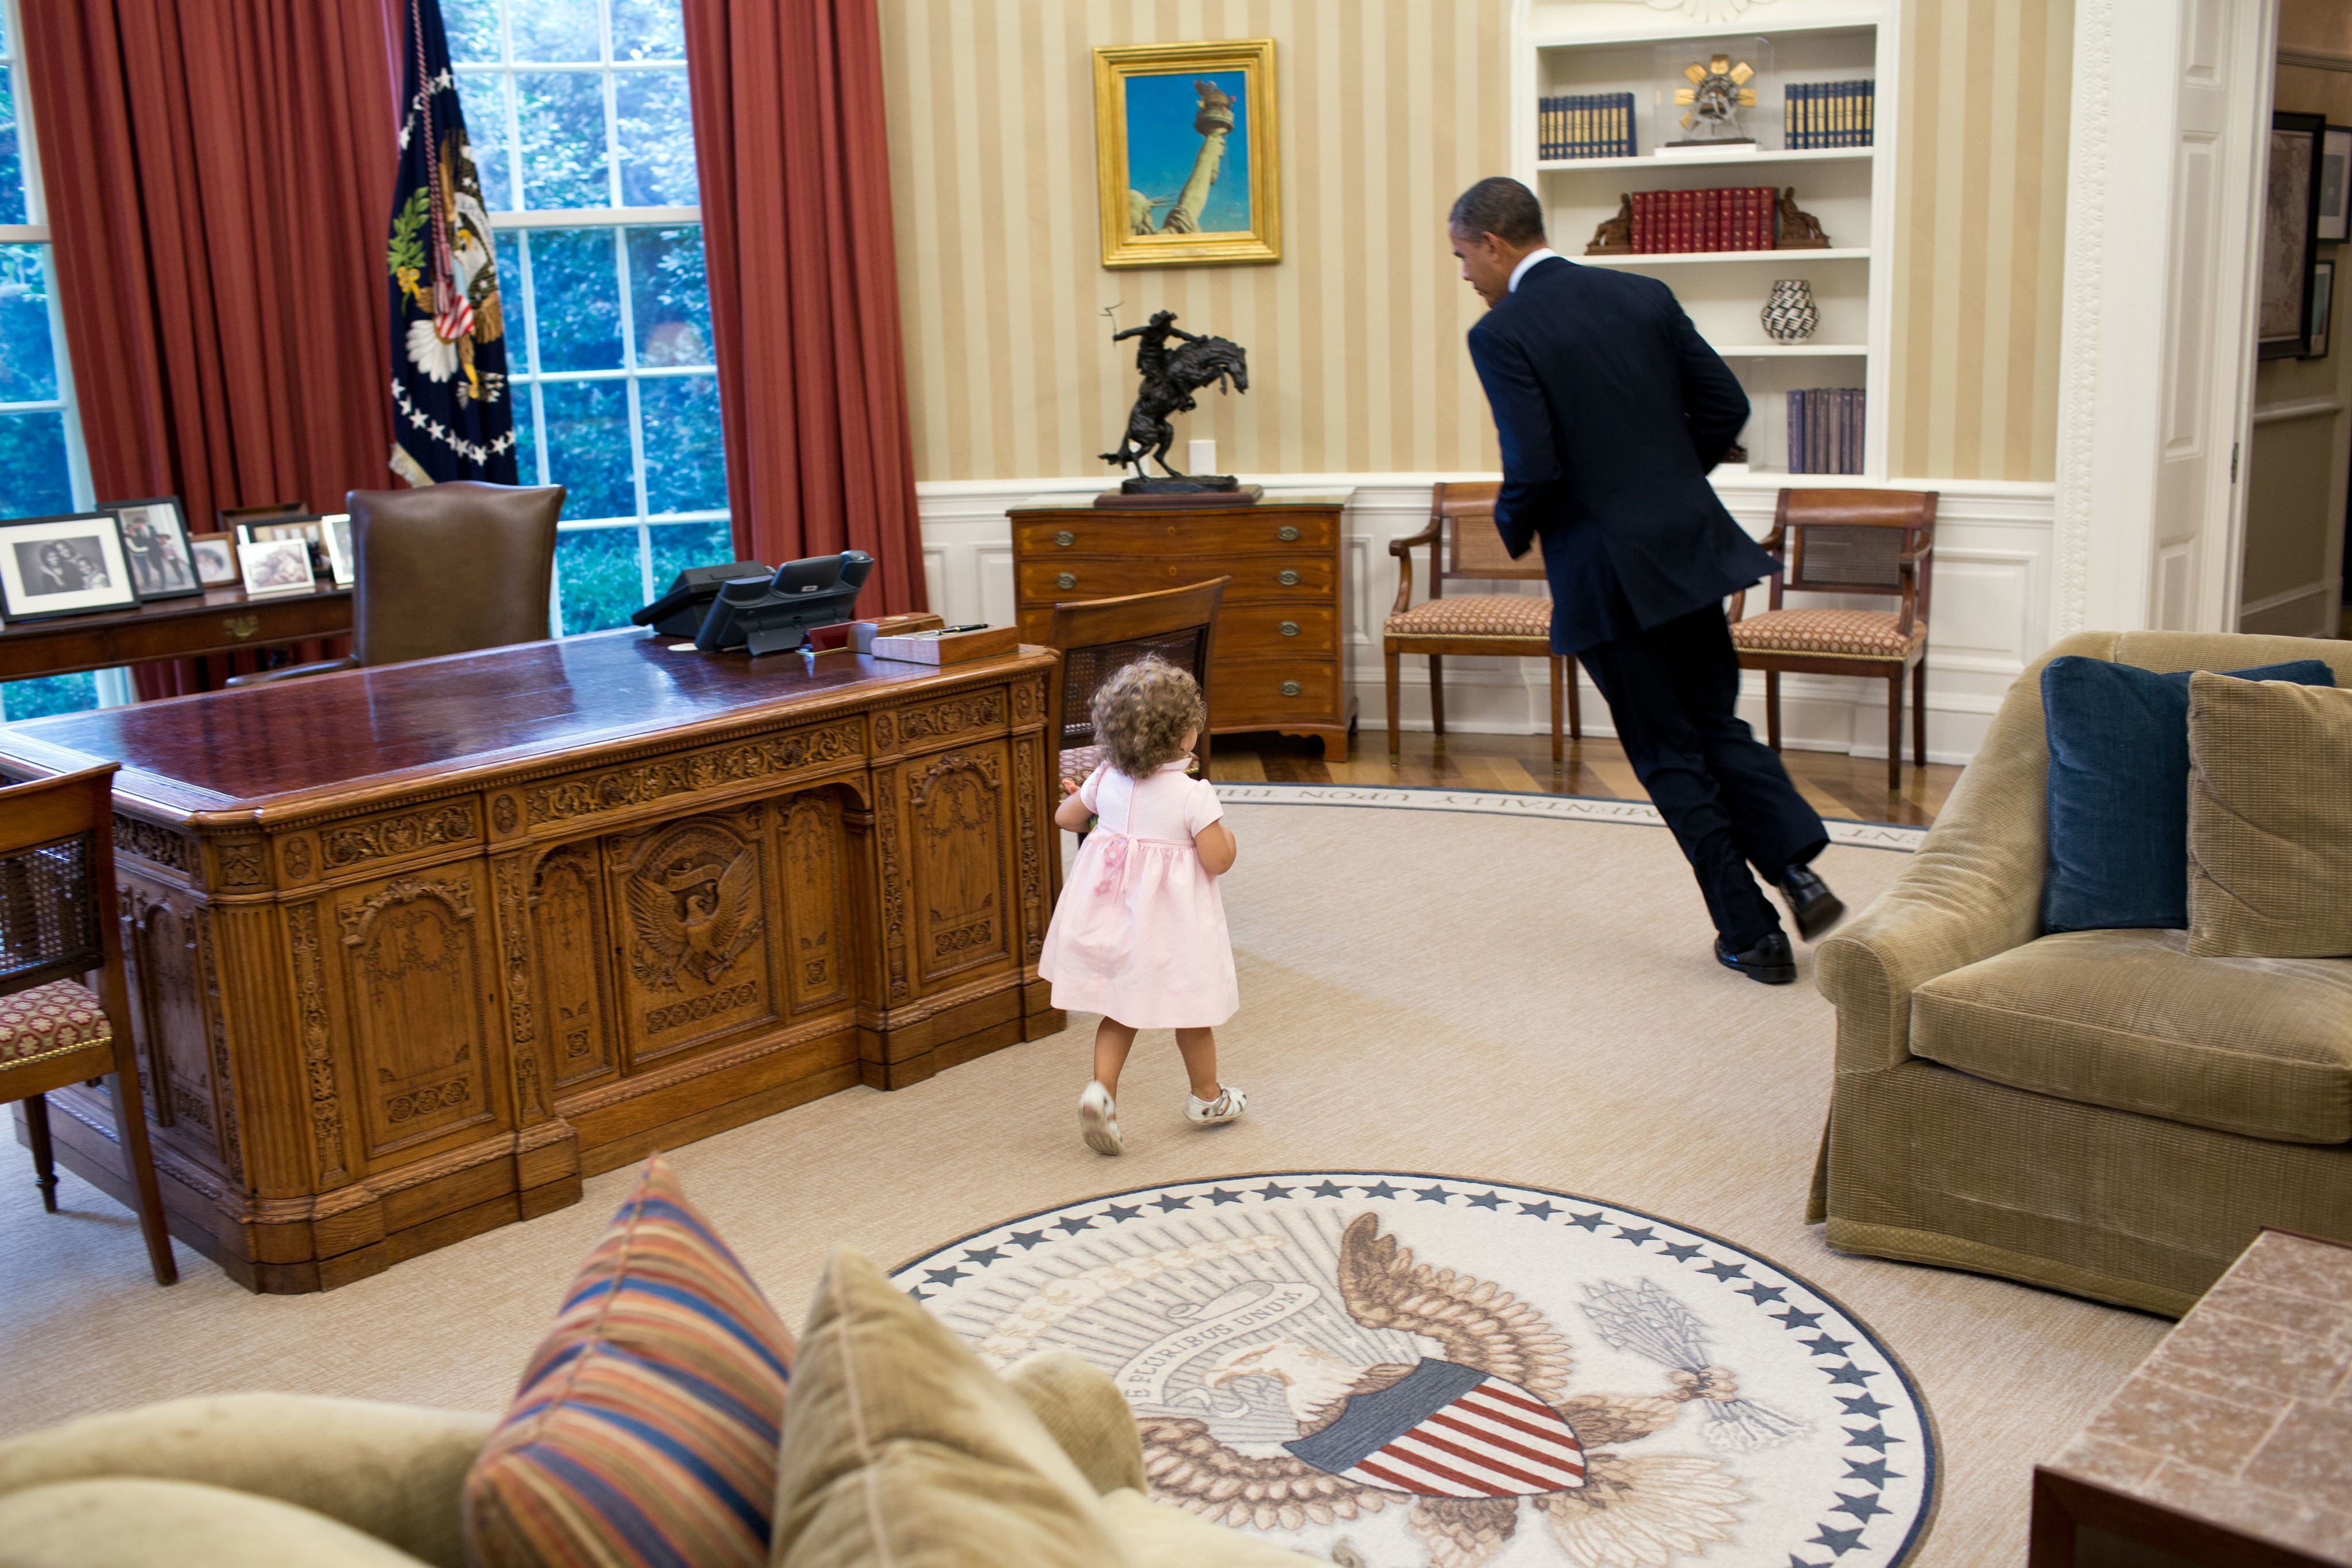 President Barack Obama runs around his desk in the Oval Office with Sarah Froman, daughter of Nancy Goodman and Mike Froman, Deputy National Security Advisor for International Economics, July 9, 2012. (Official White House Photo by Pete Souza)